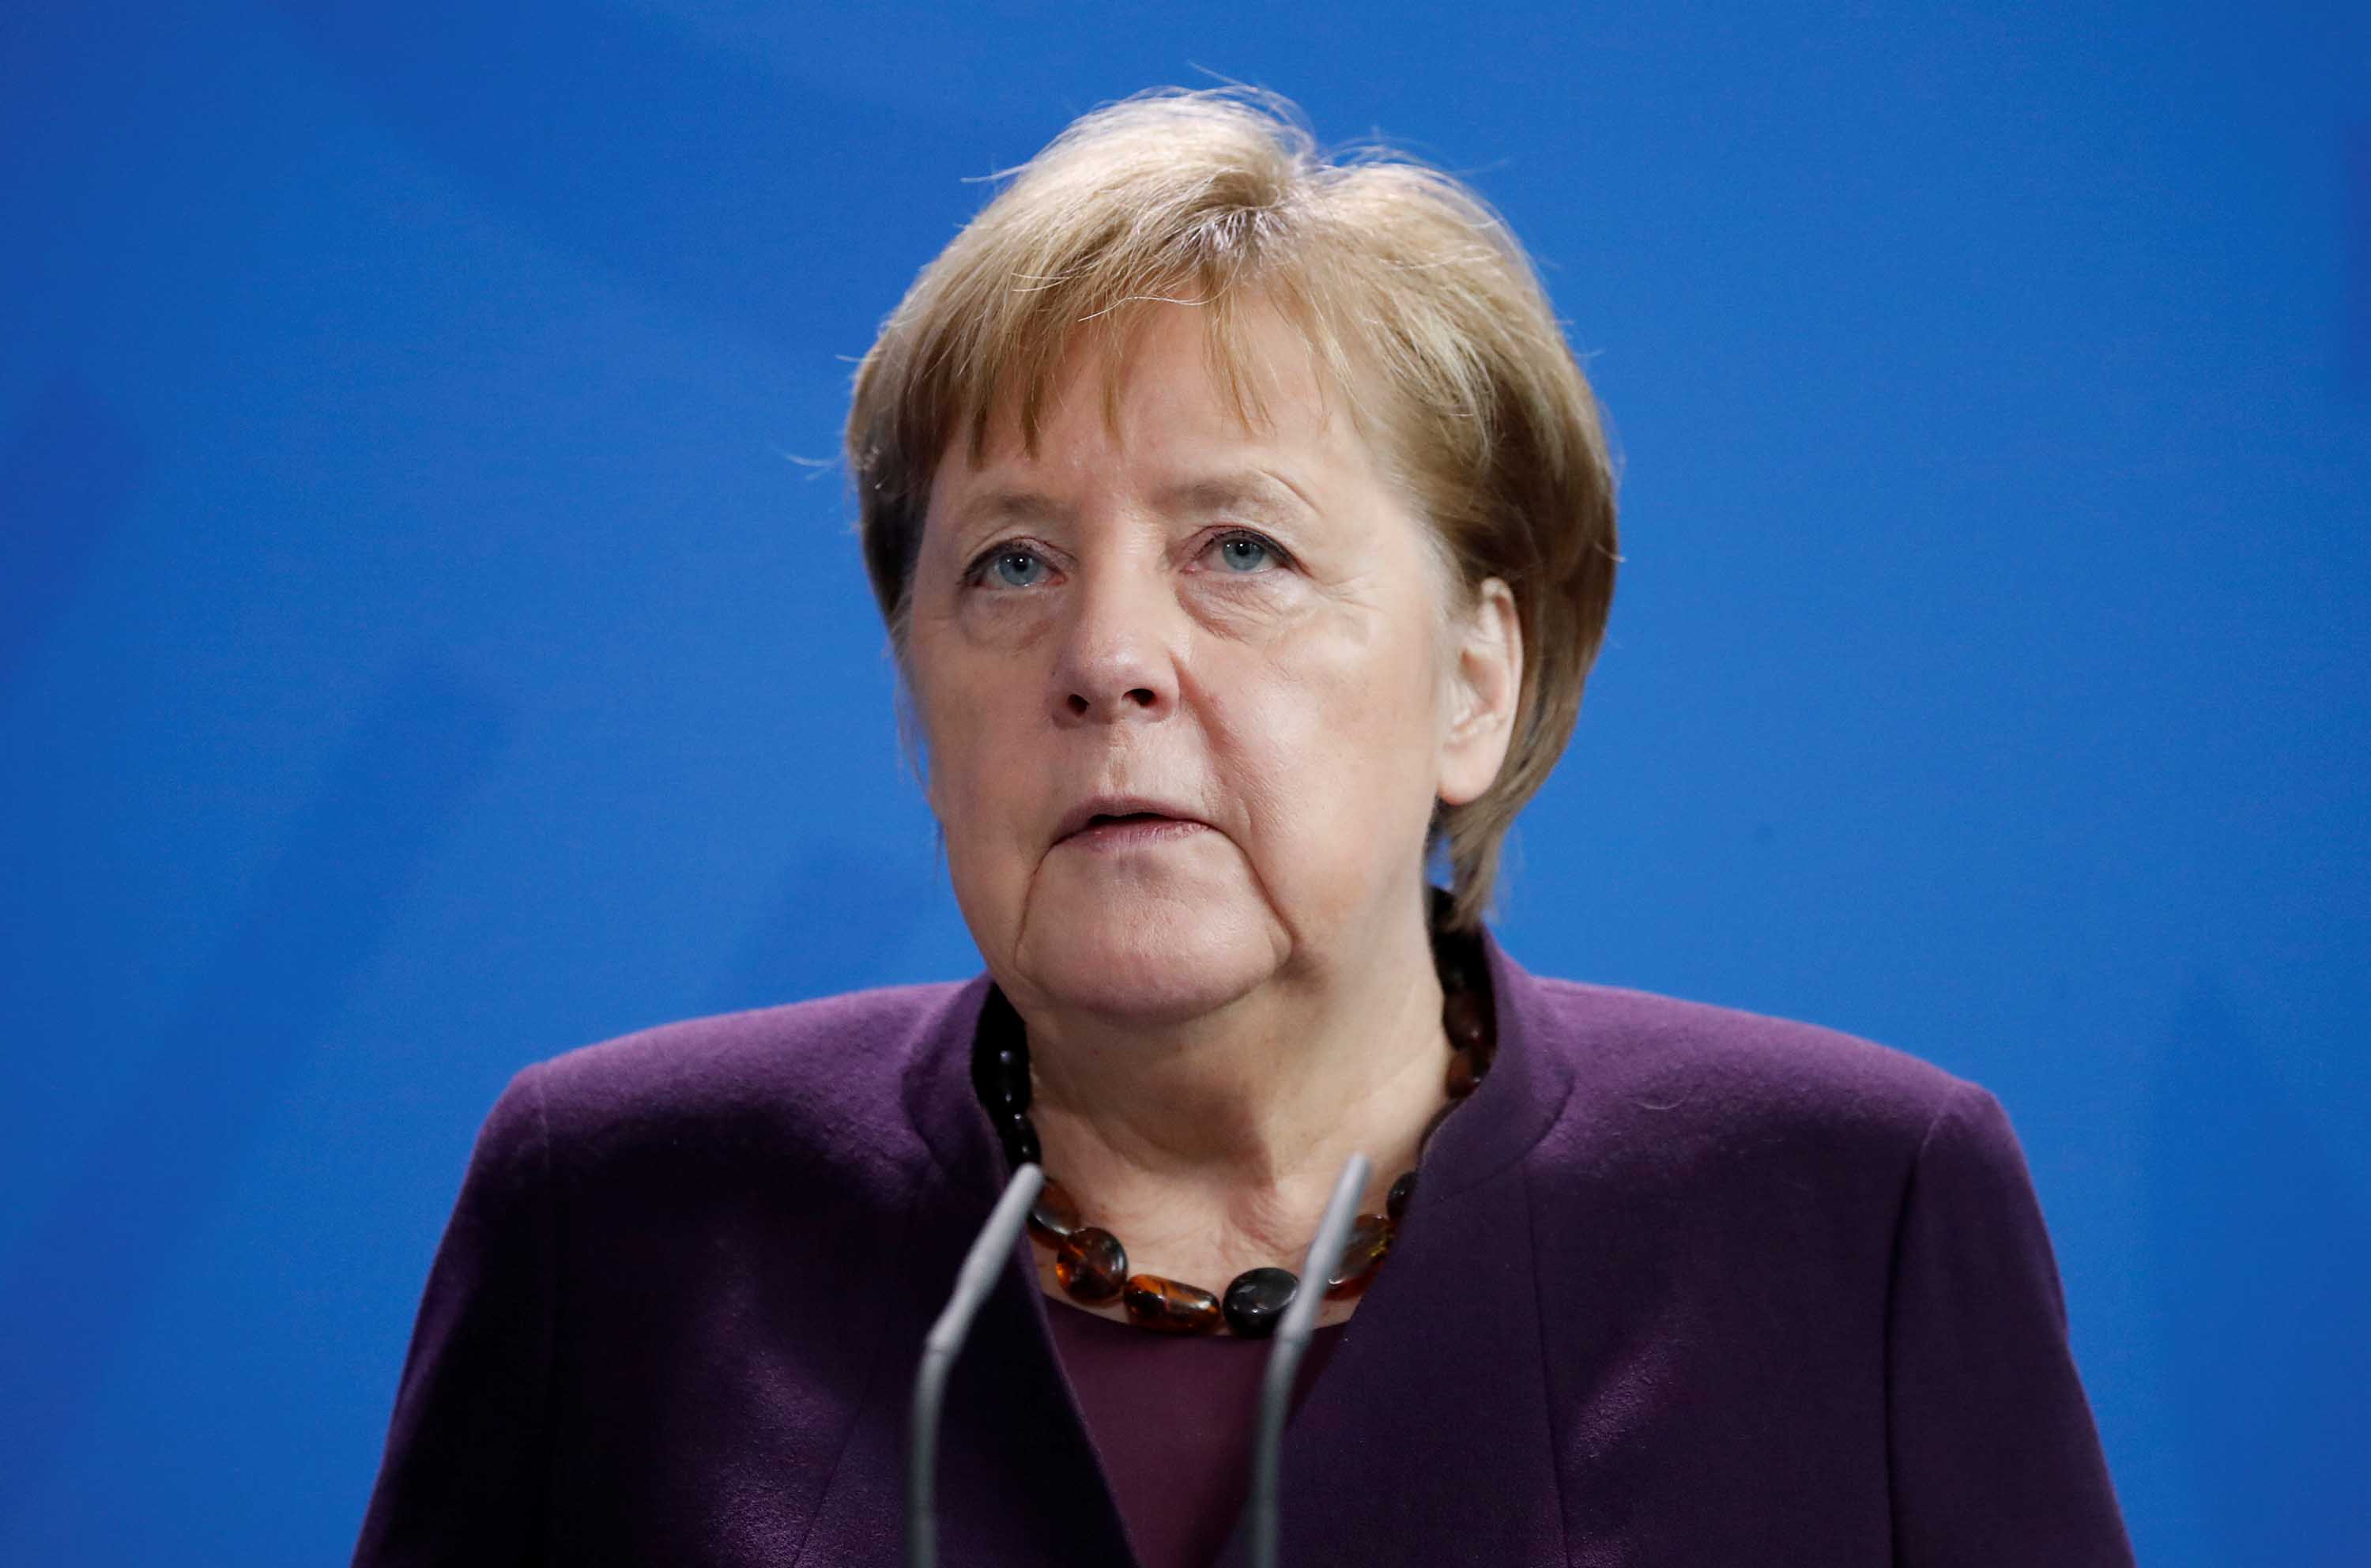 German Chancellor Angela Merkel gives a statement in Berlin on Thursday, following the shootings in Hanau, Germany.